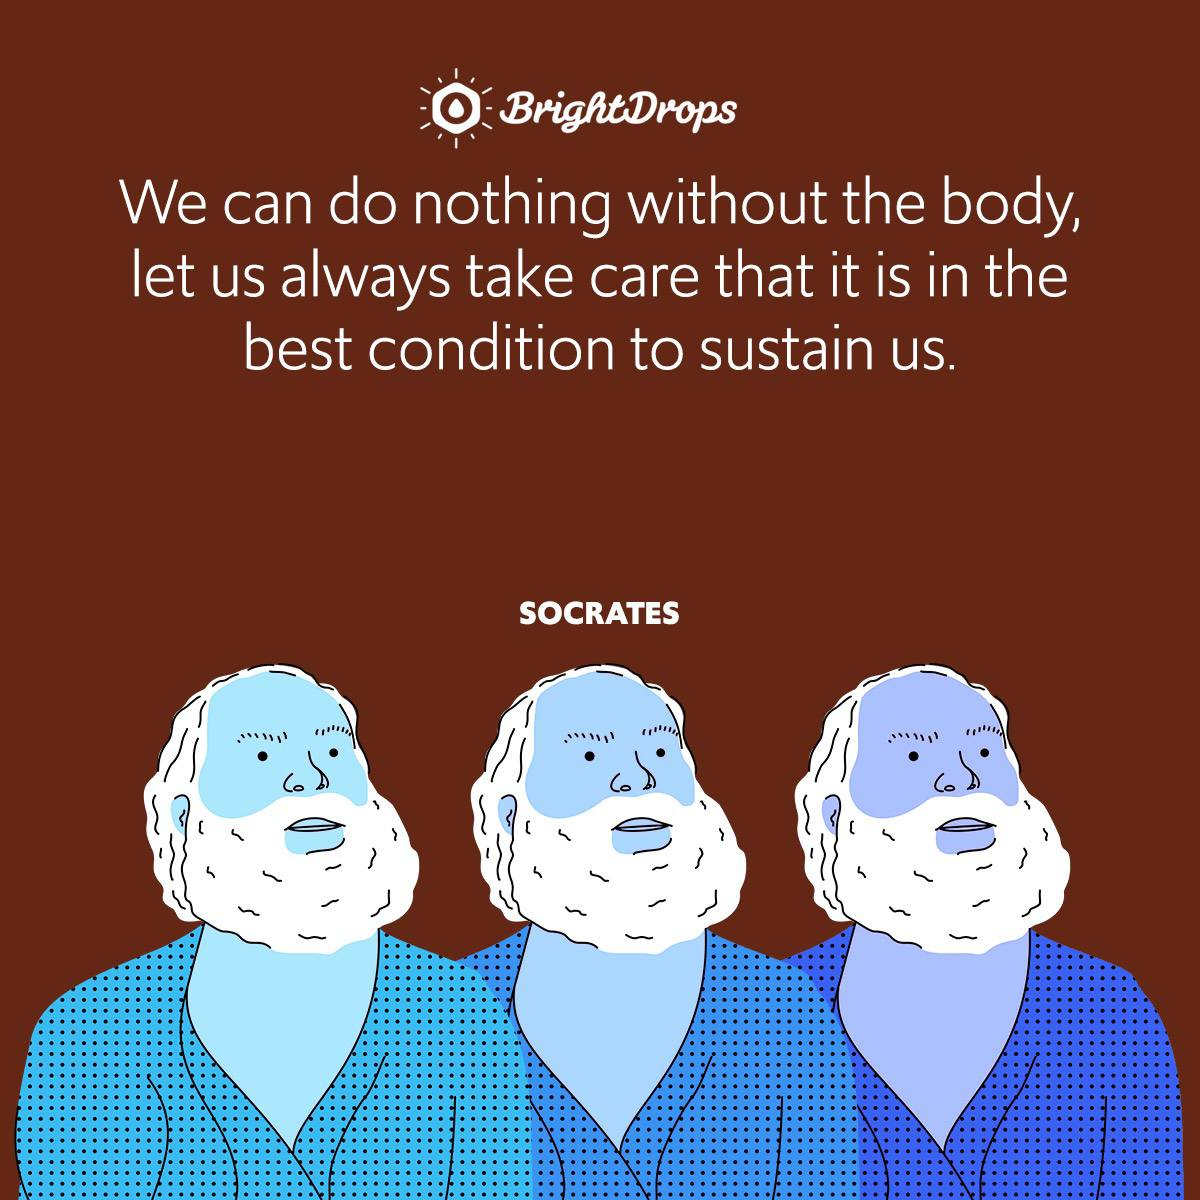 We can do nothing without the body, let us always take care that it is in the best condition to sustain us.